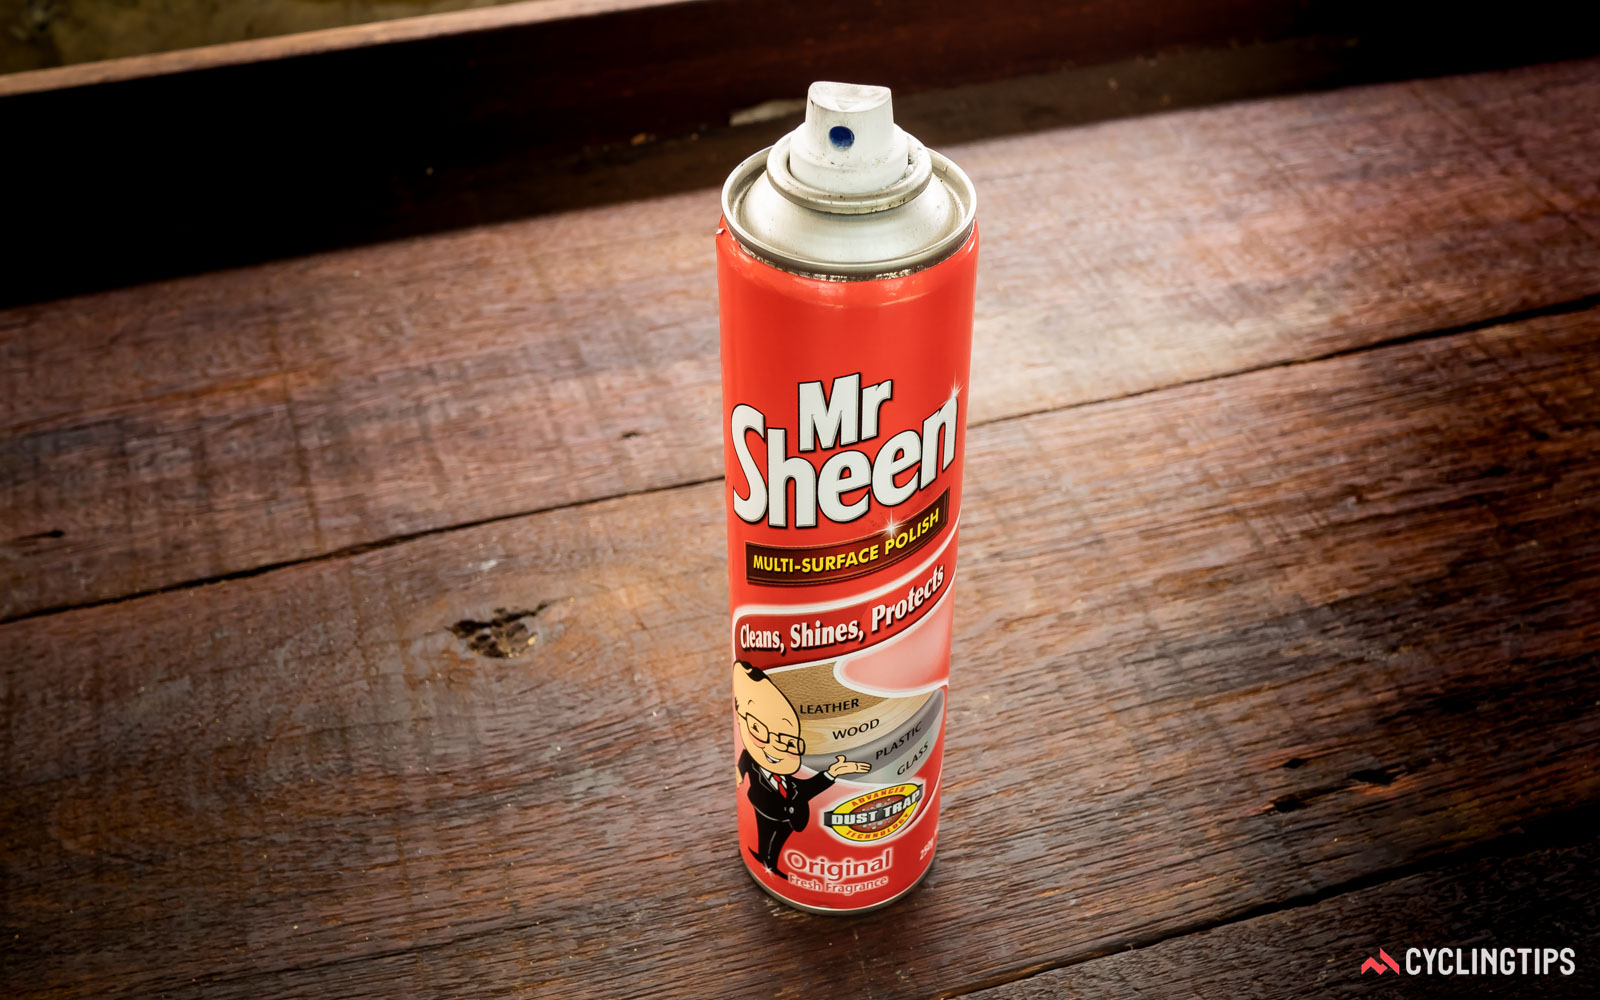 Mr Sheen all-surface polish perfect for cleaning bikes